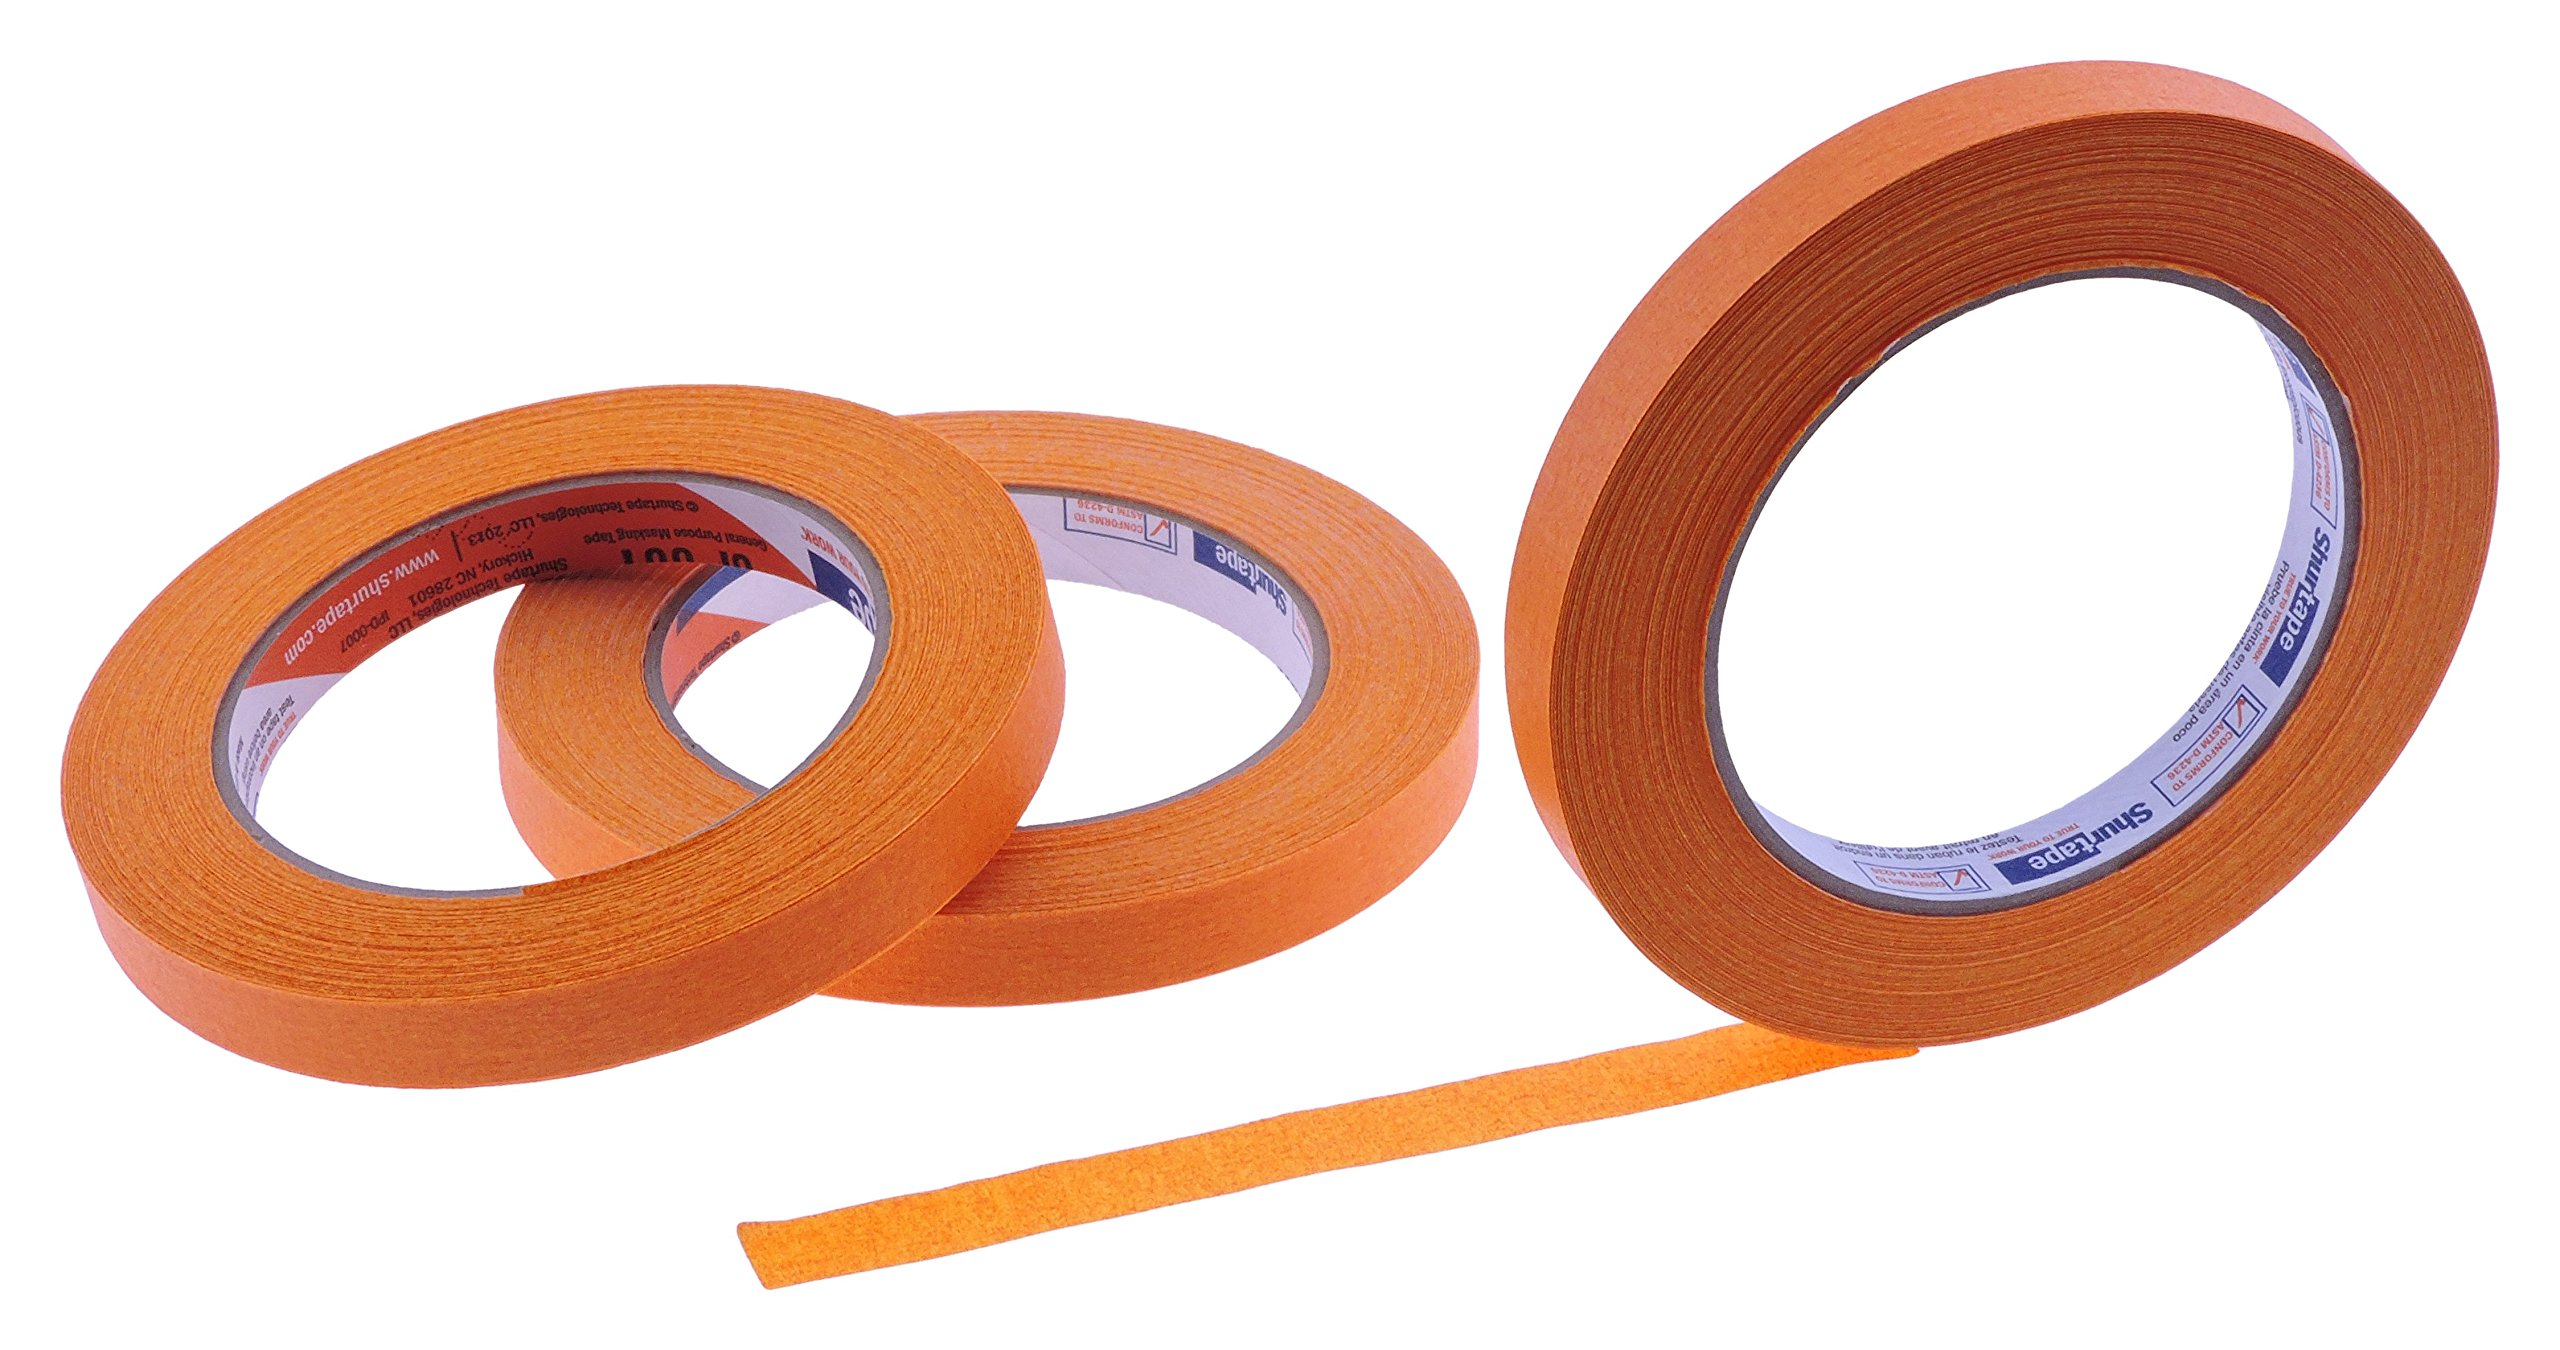 3pk 1/2'' in x 60yd Blaze Orange Masking Tape Extra Sticky PRO Grade High Stick Special Project Painters Tape Painting Trim Arts Crafts School Home Office 21 Days 12MM x 55M .5 inch Safety Tangerine